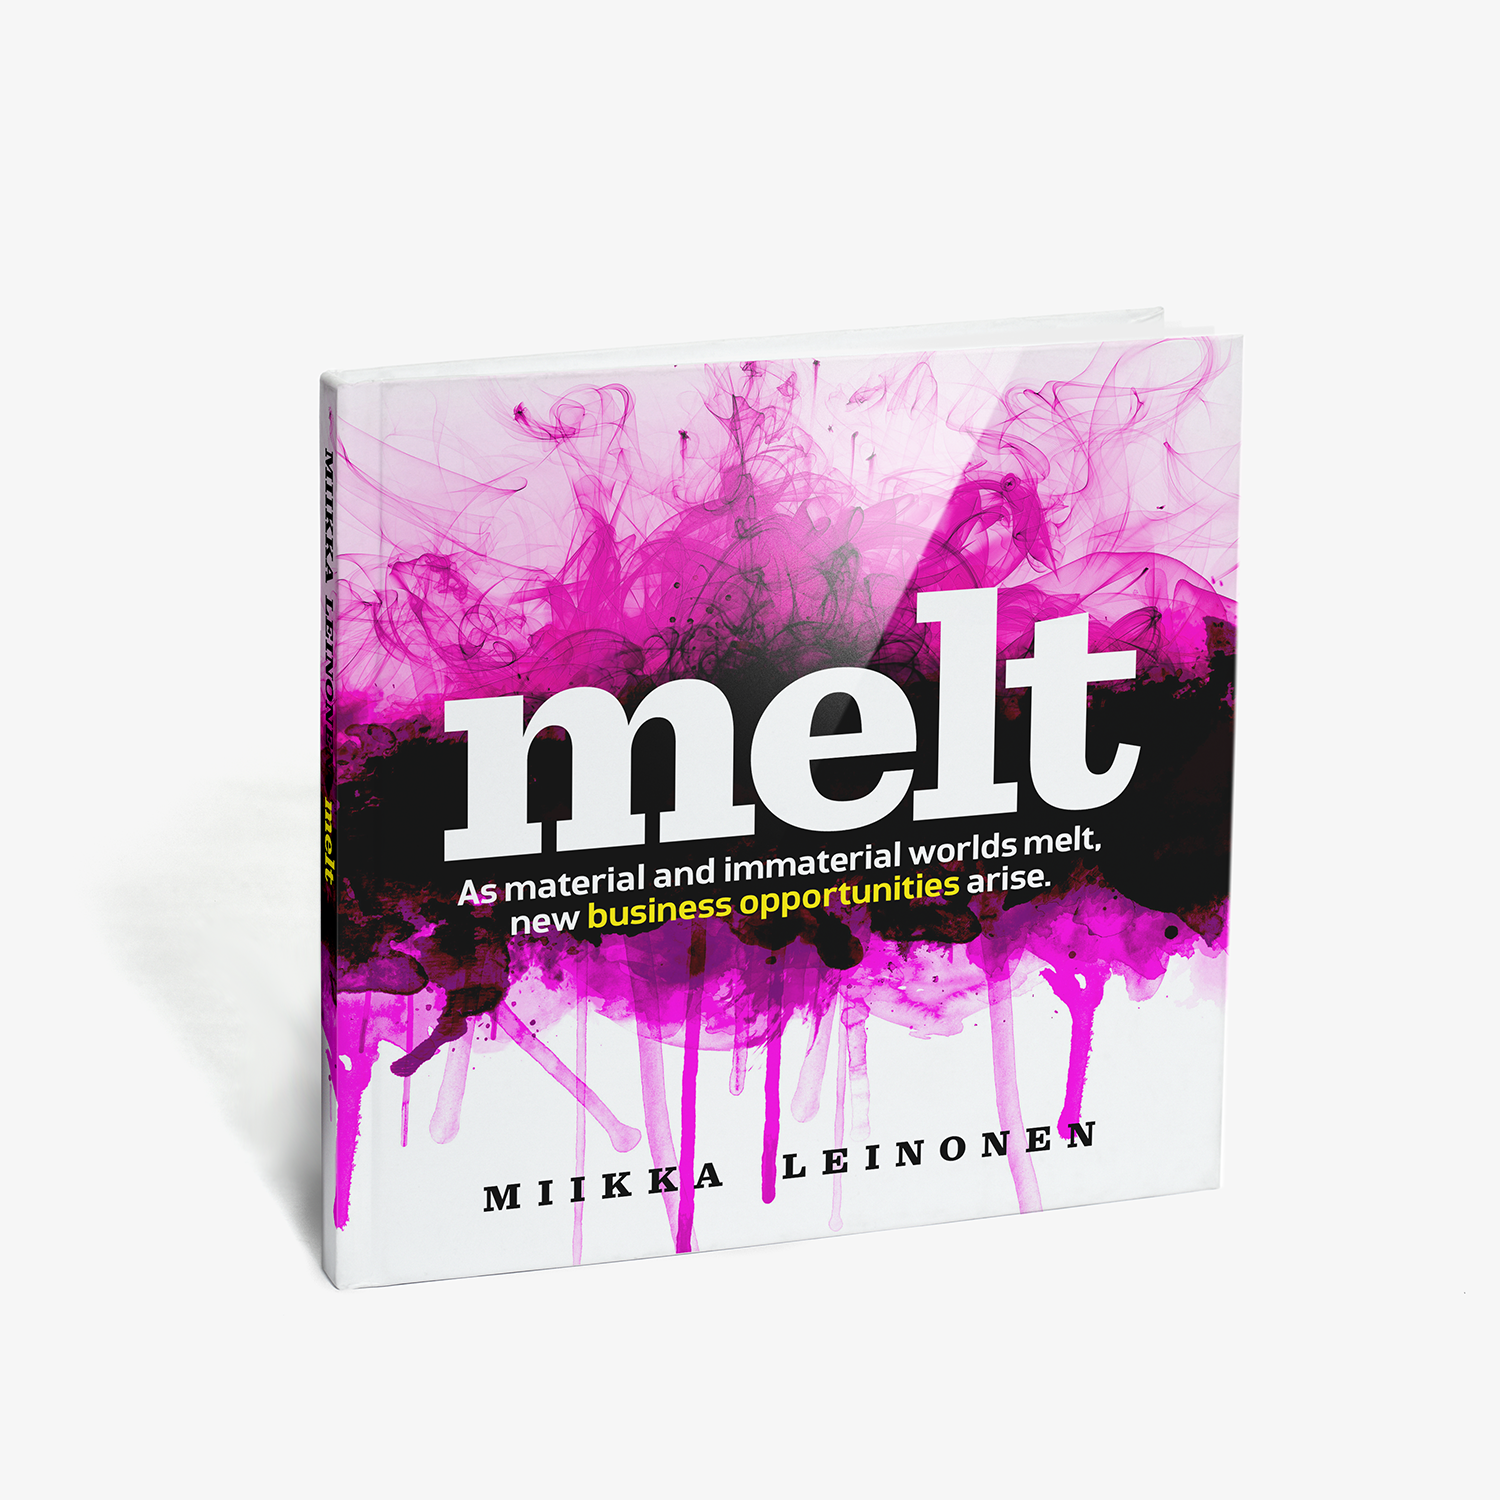 Melt - The Book